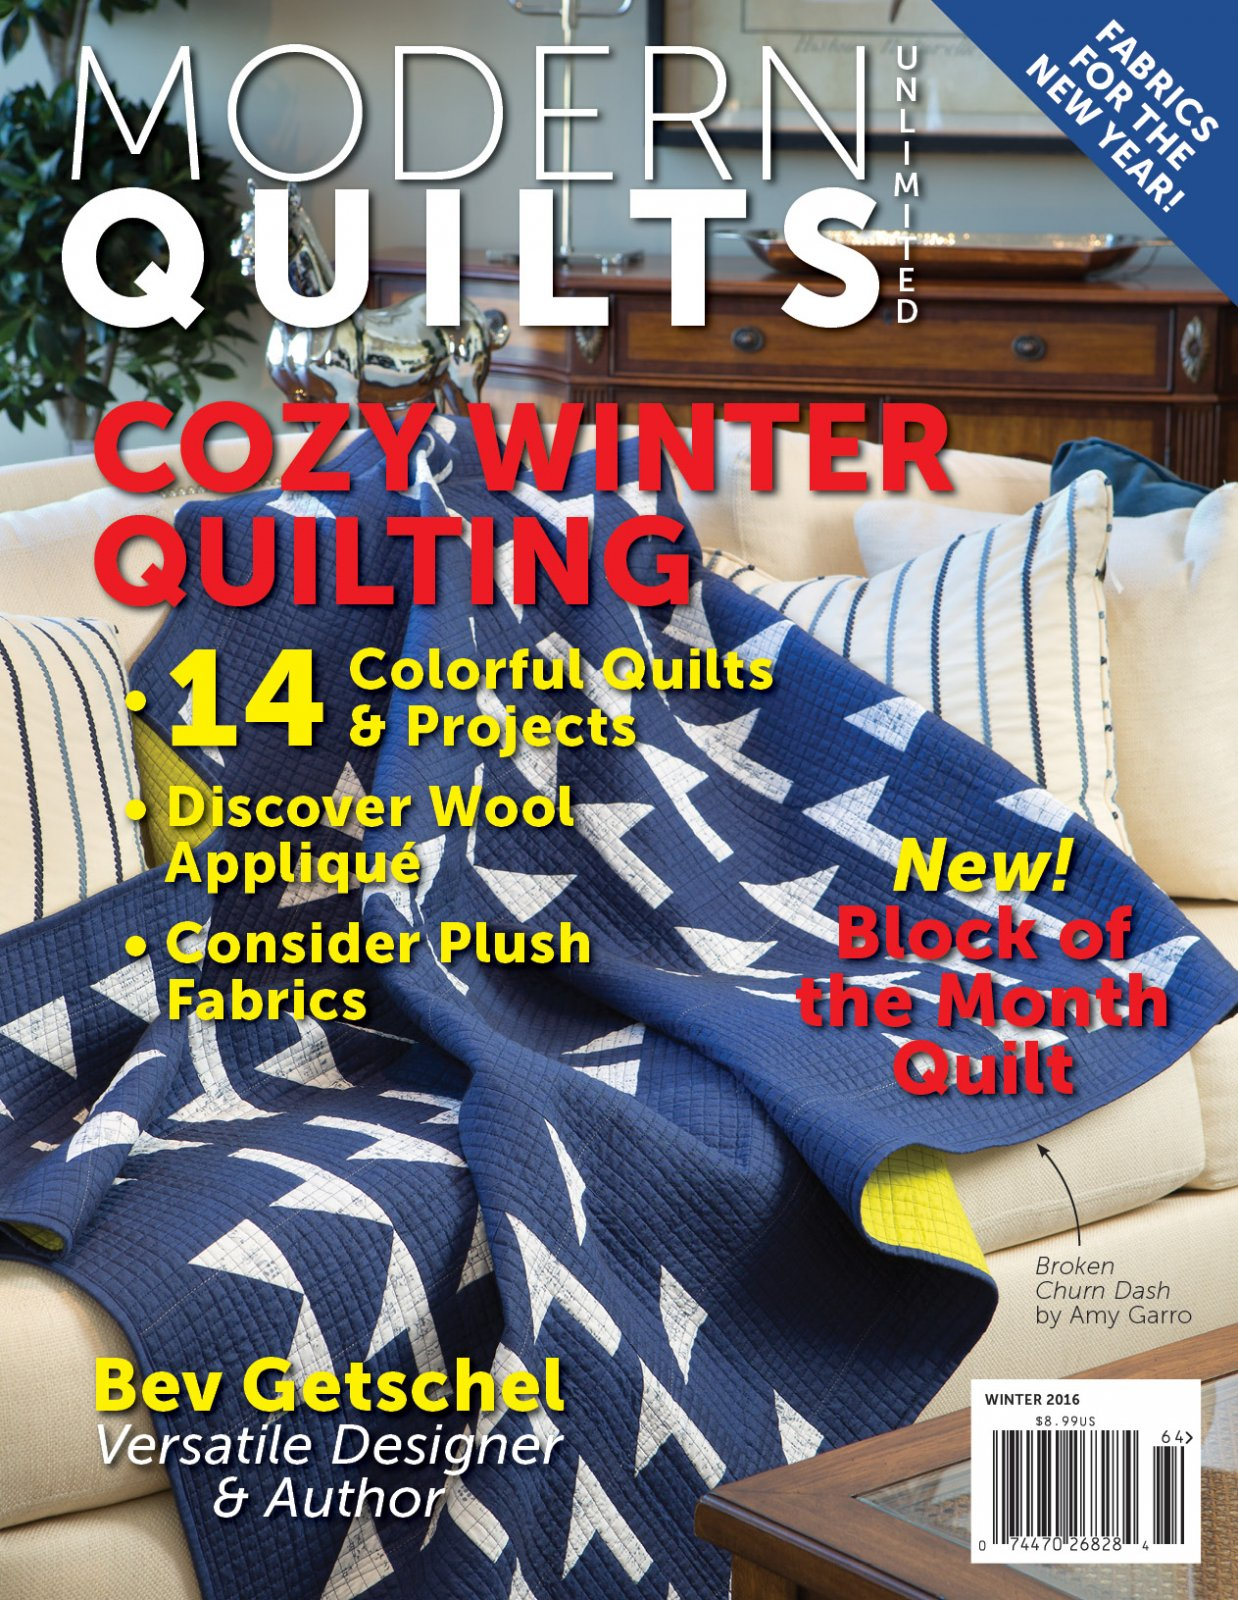 Modern Quilts Unlimited Winter 2016 Issue